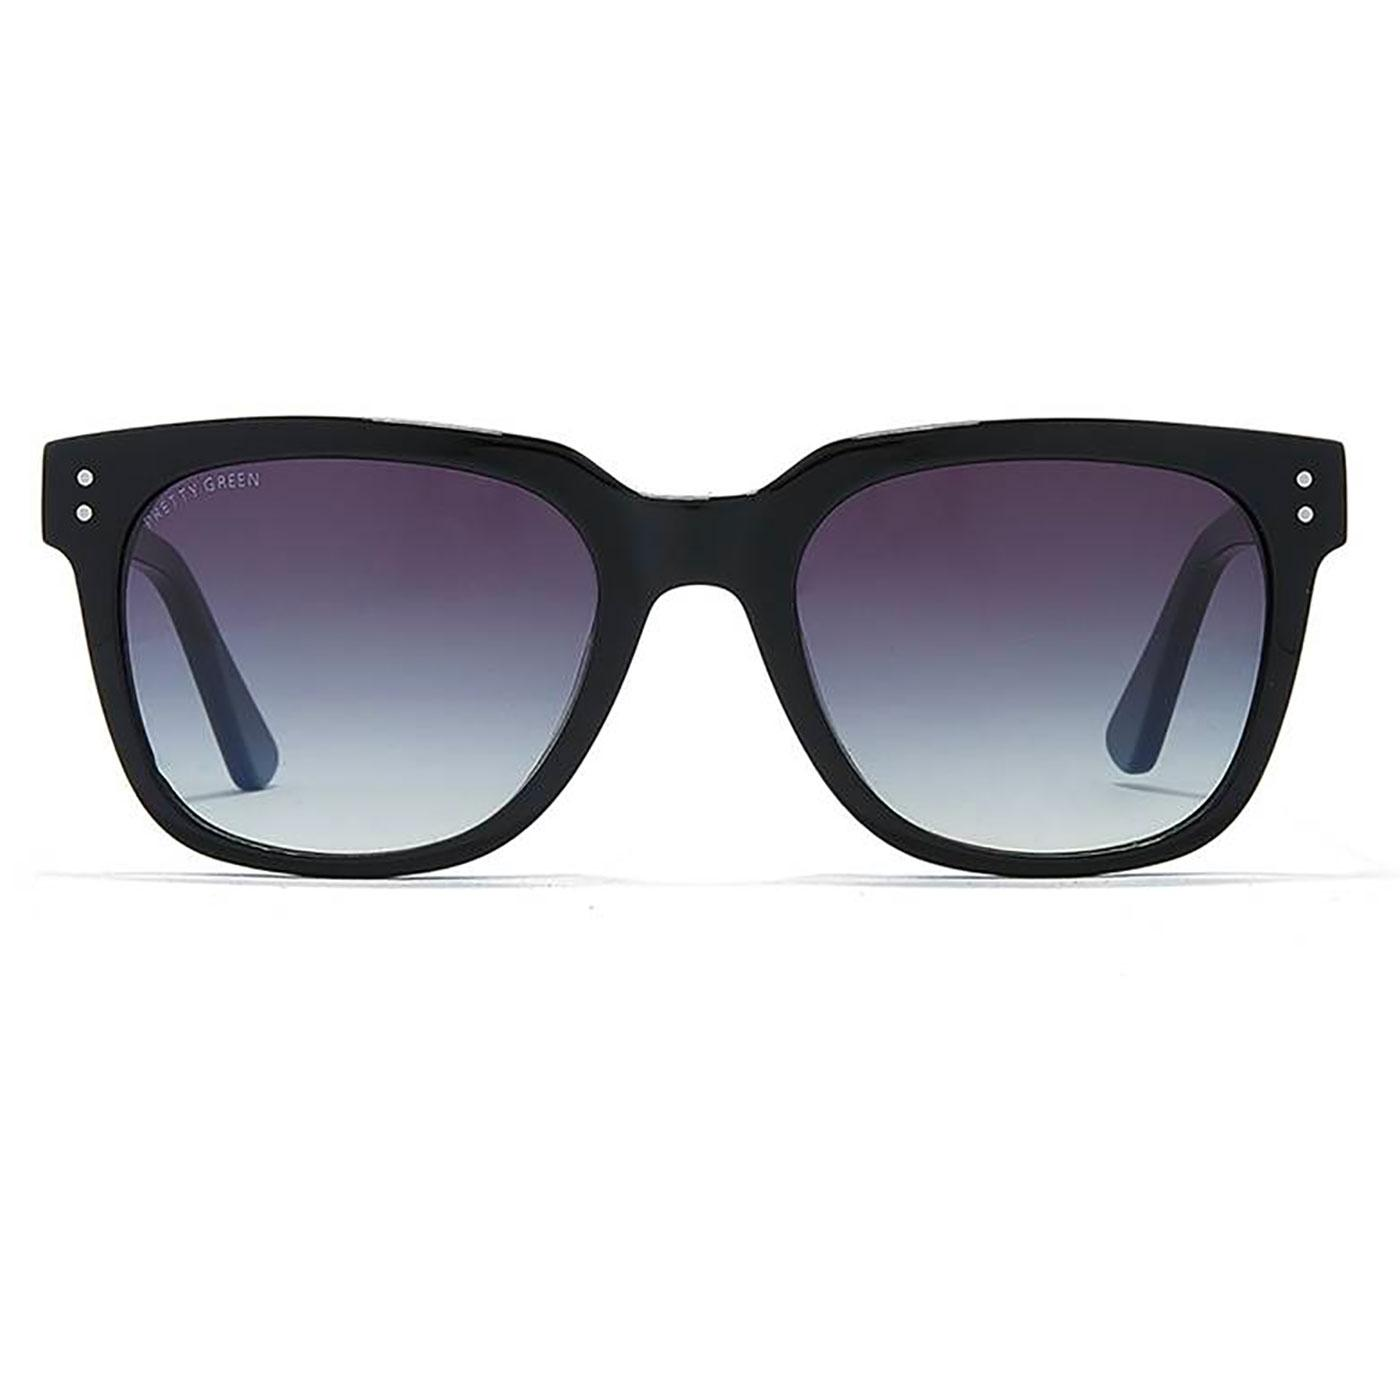 PRETTY GREEN Men's Retro Wayfarer Sunglasses BLACK